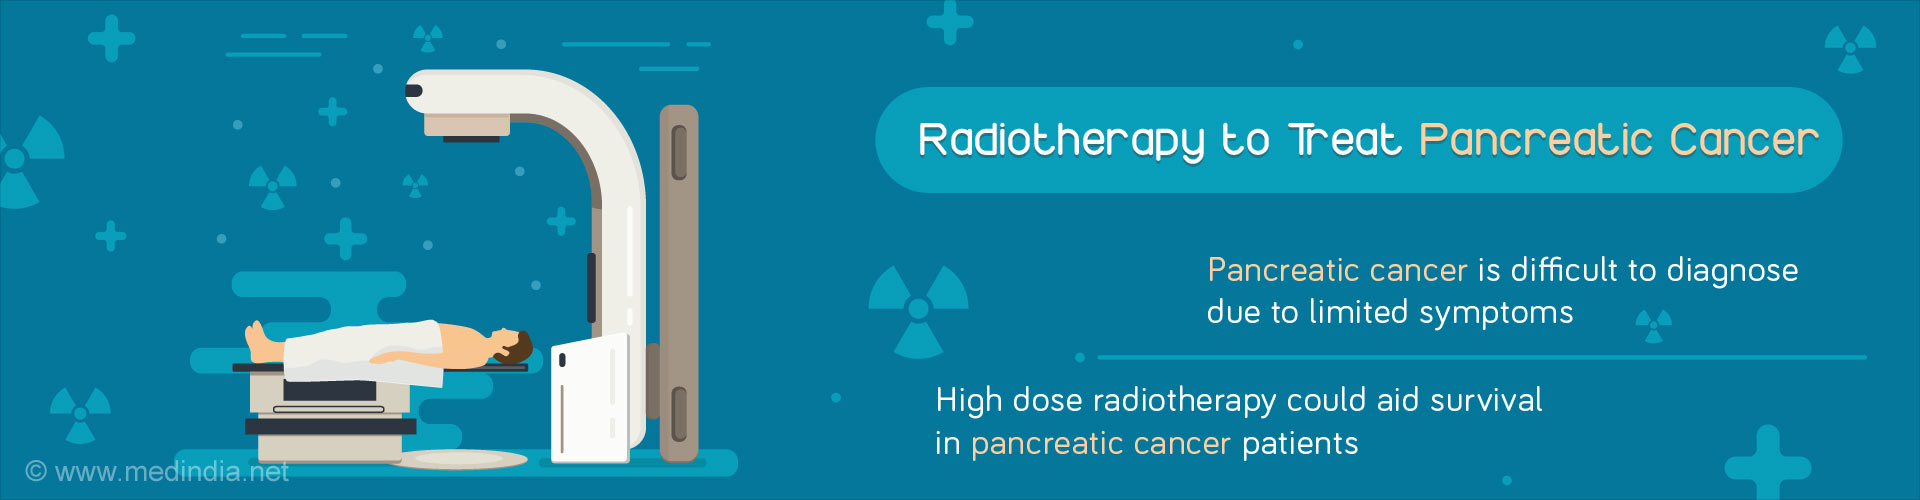 Radiotherapy to Treat Pancreatic Cancer - Pancreatic cancer is difficult to diagnose due to limited symptoms - High dose radiotherapy could aid survival in pancreatic cancer patients